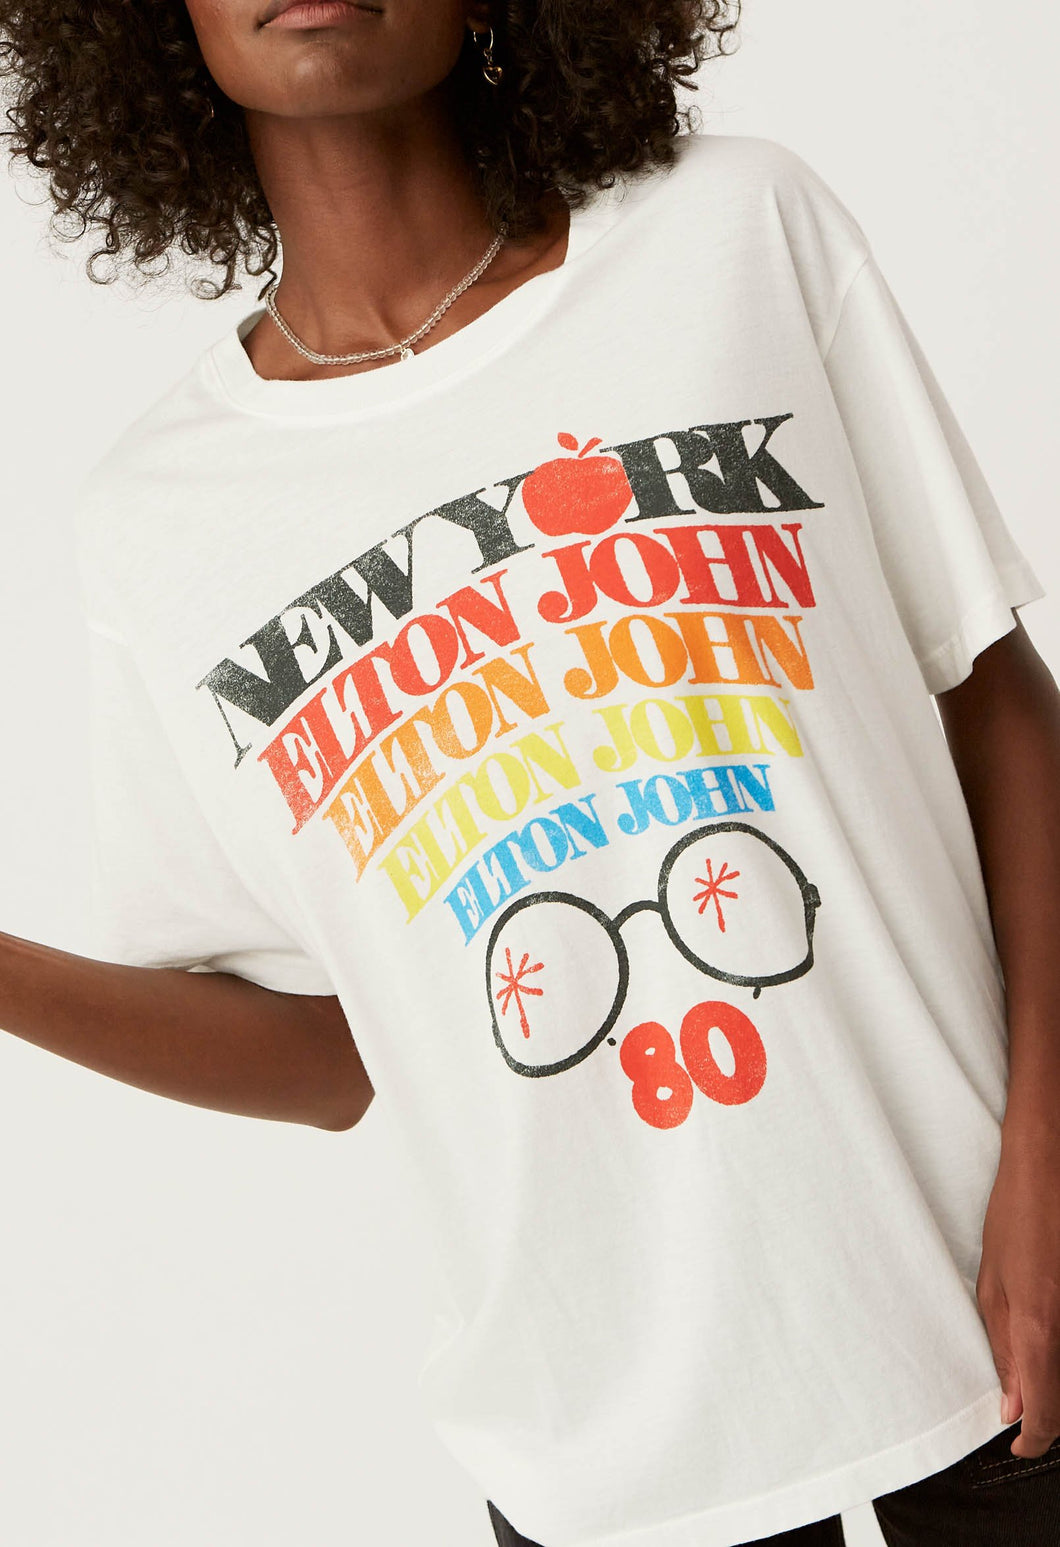 Elton John New York Boyfriend Tee